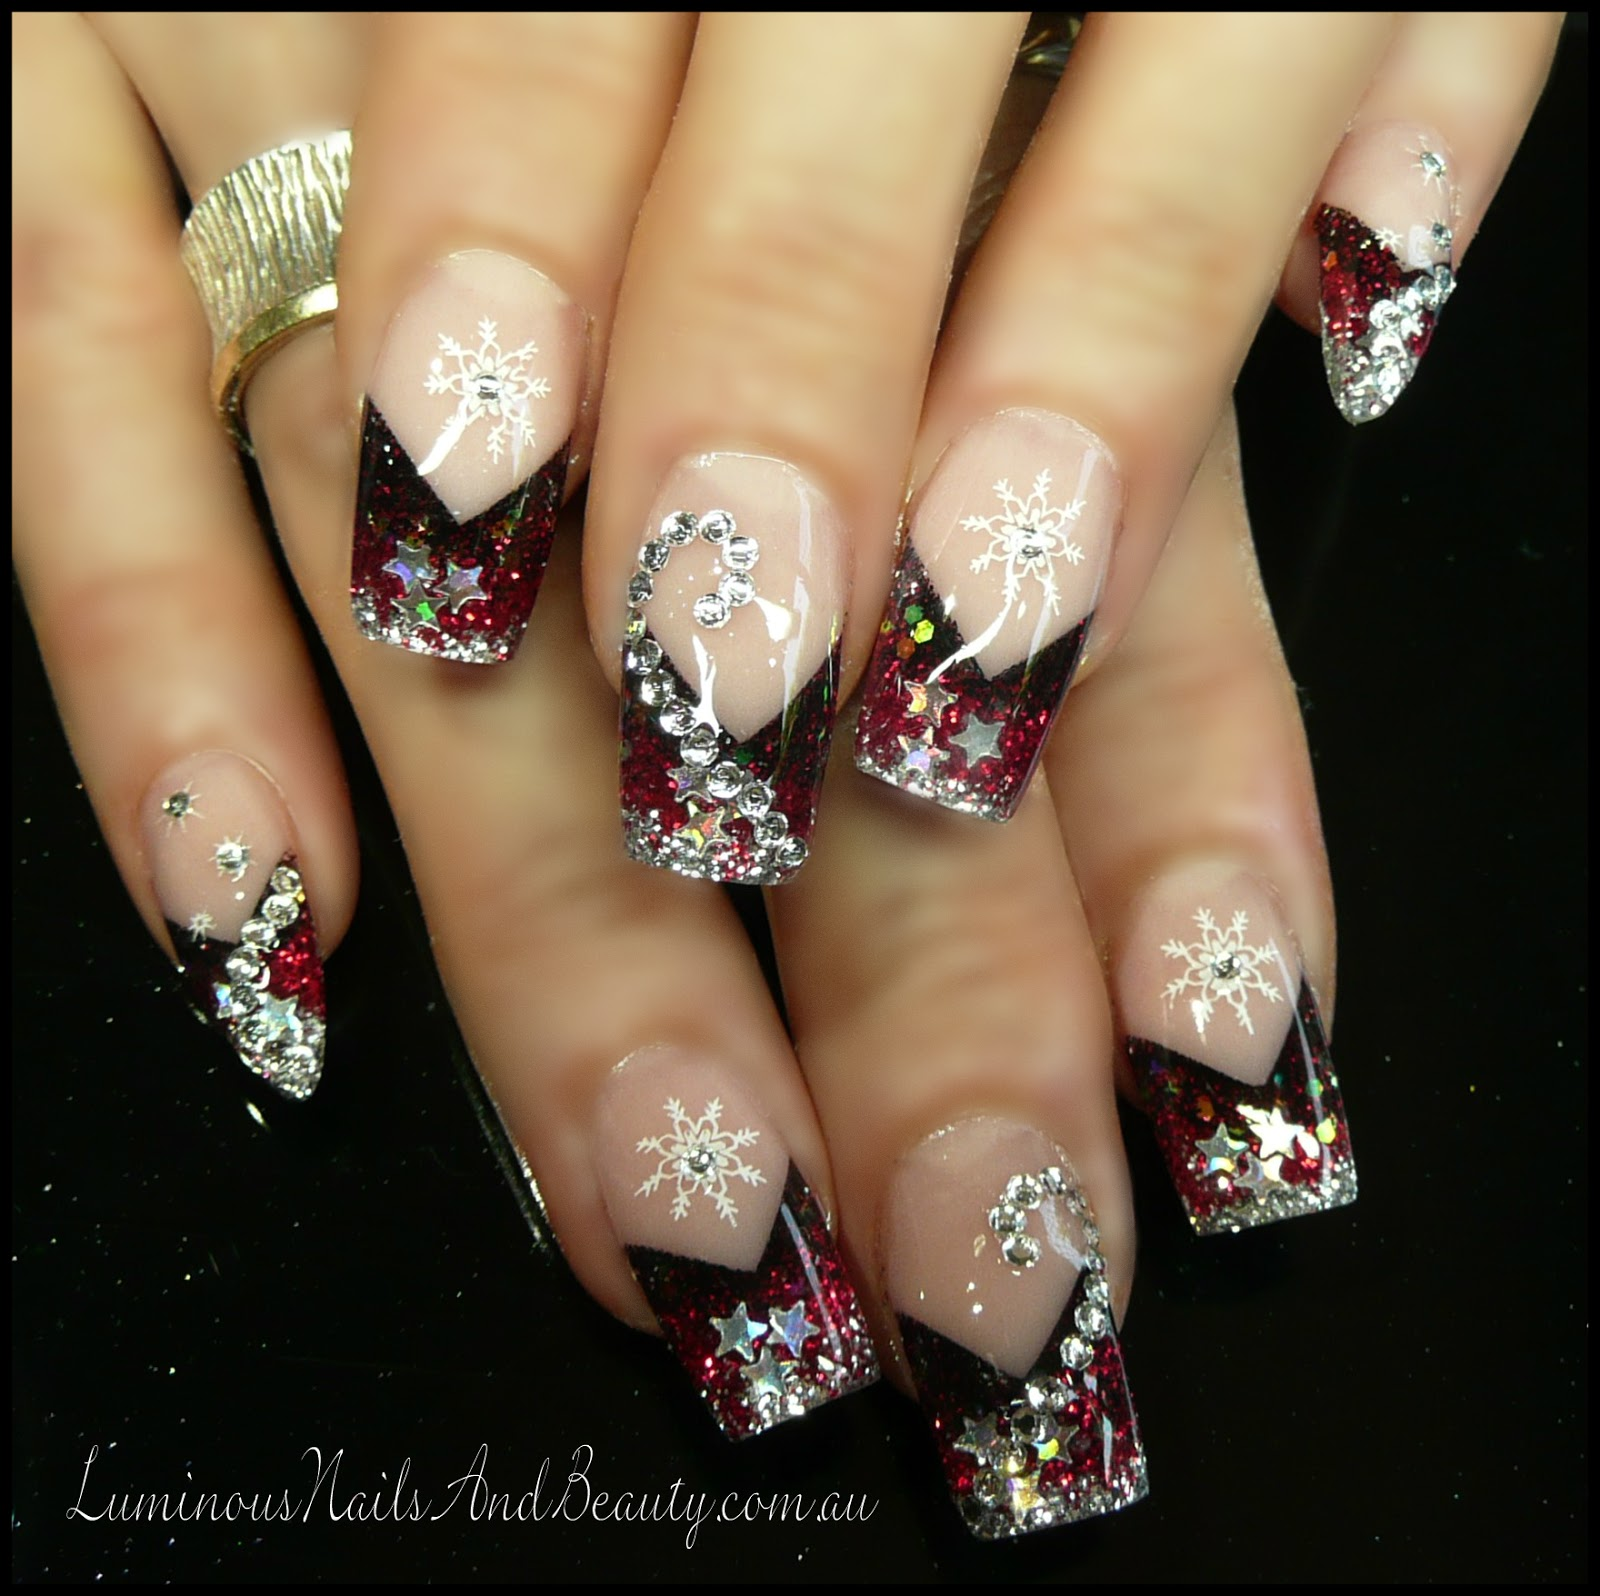 Acrylic nails  design set with swarovski crystals